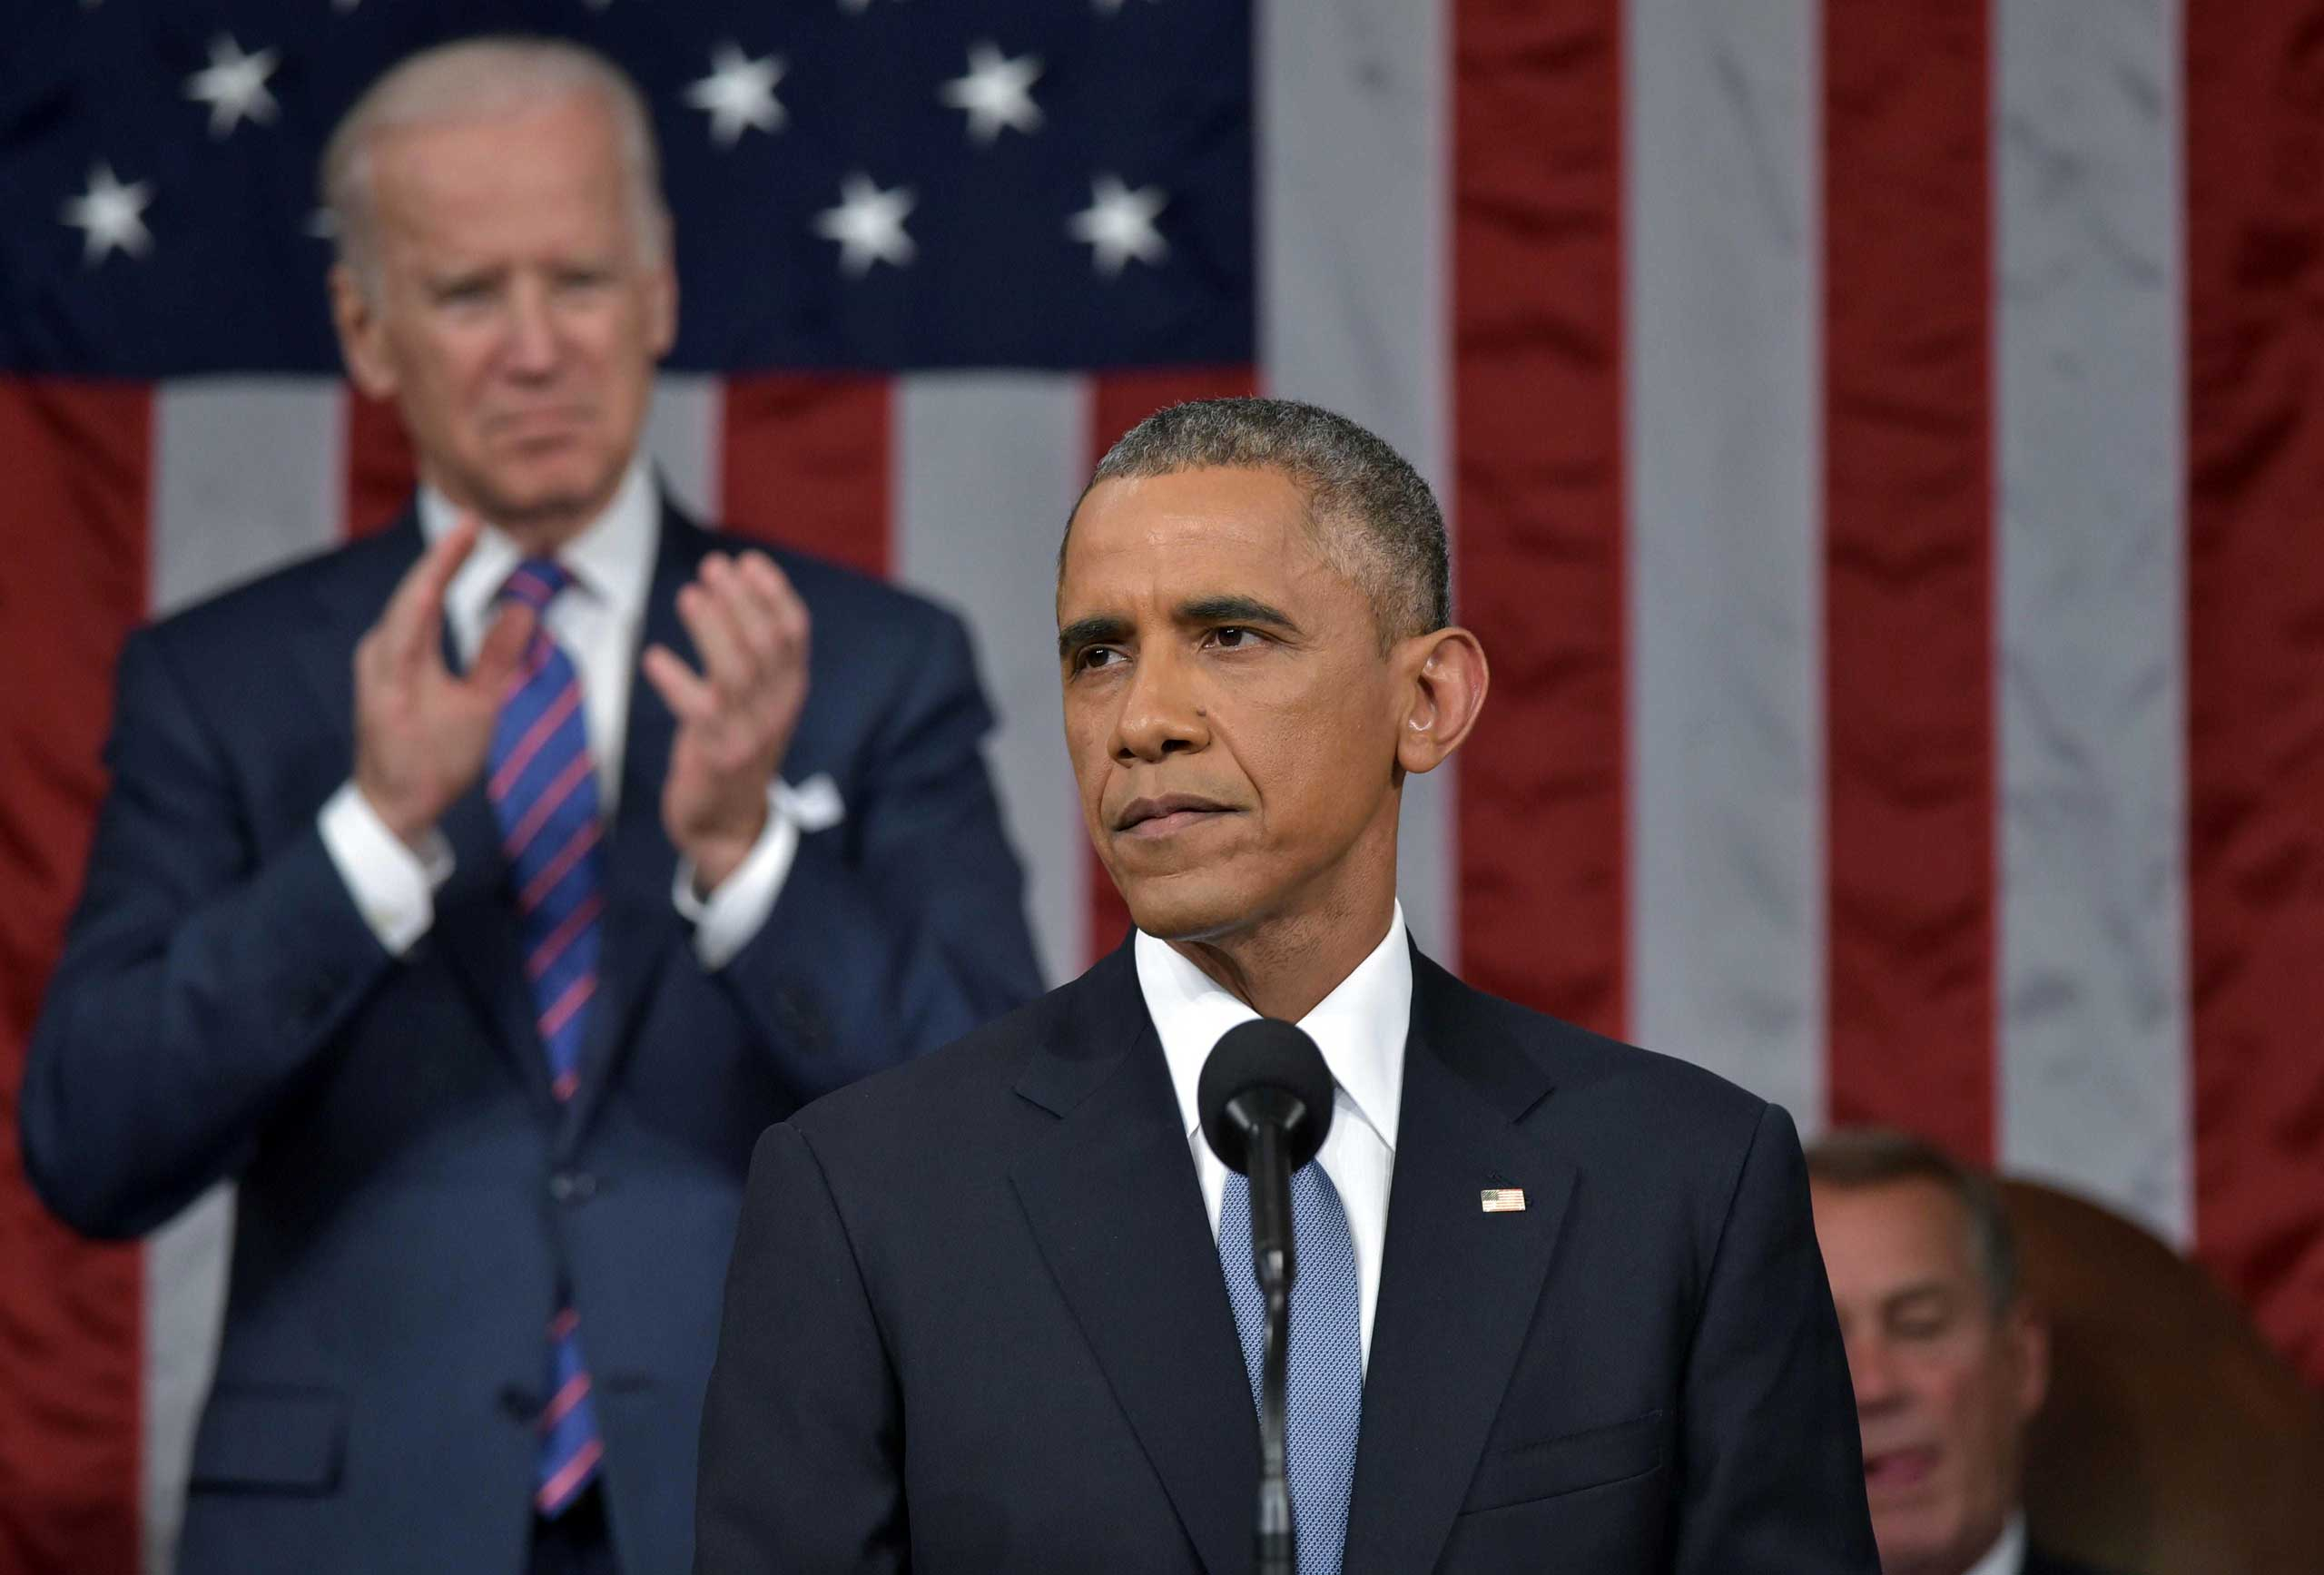 President Barack Obama delivers the State of the Union address at the U.S. Capitol in Washington on Jan. 20, 2015.